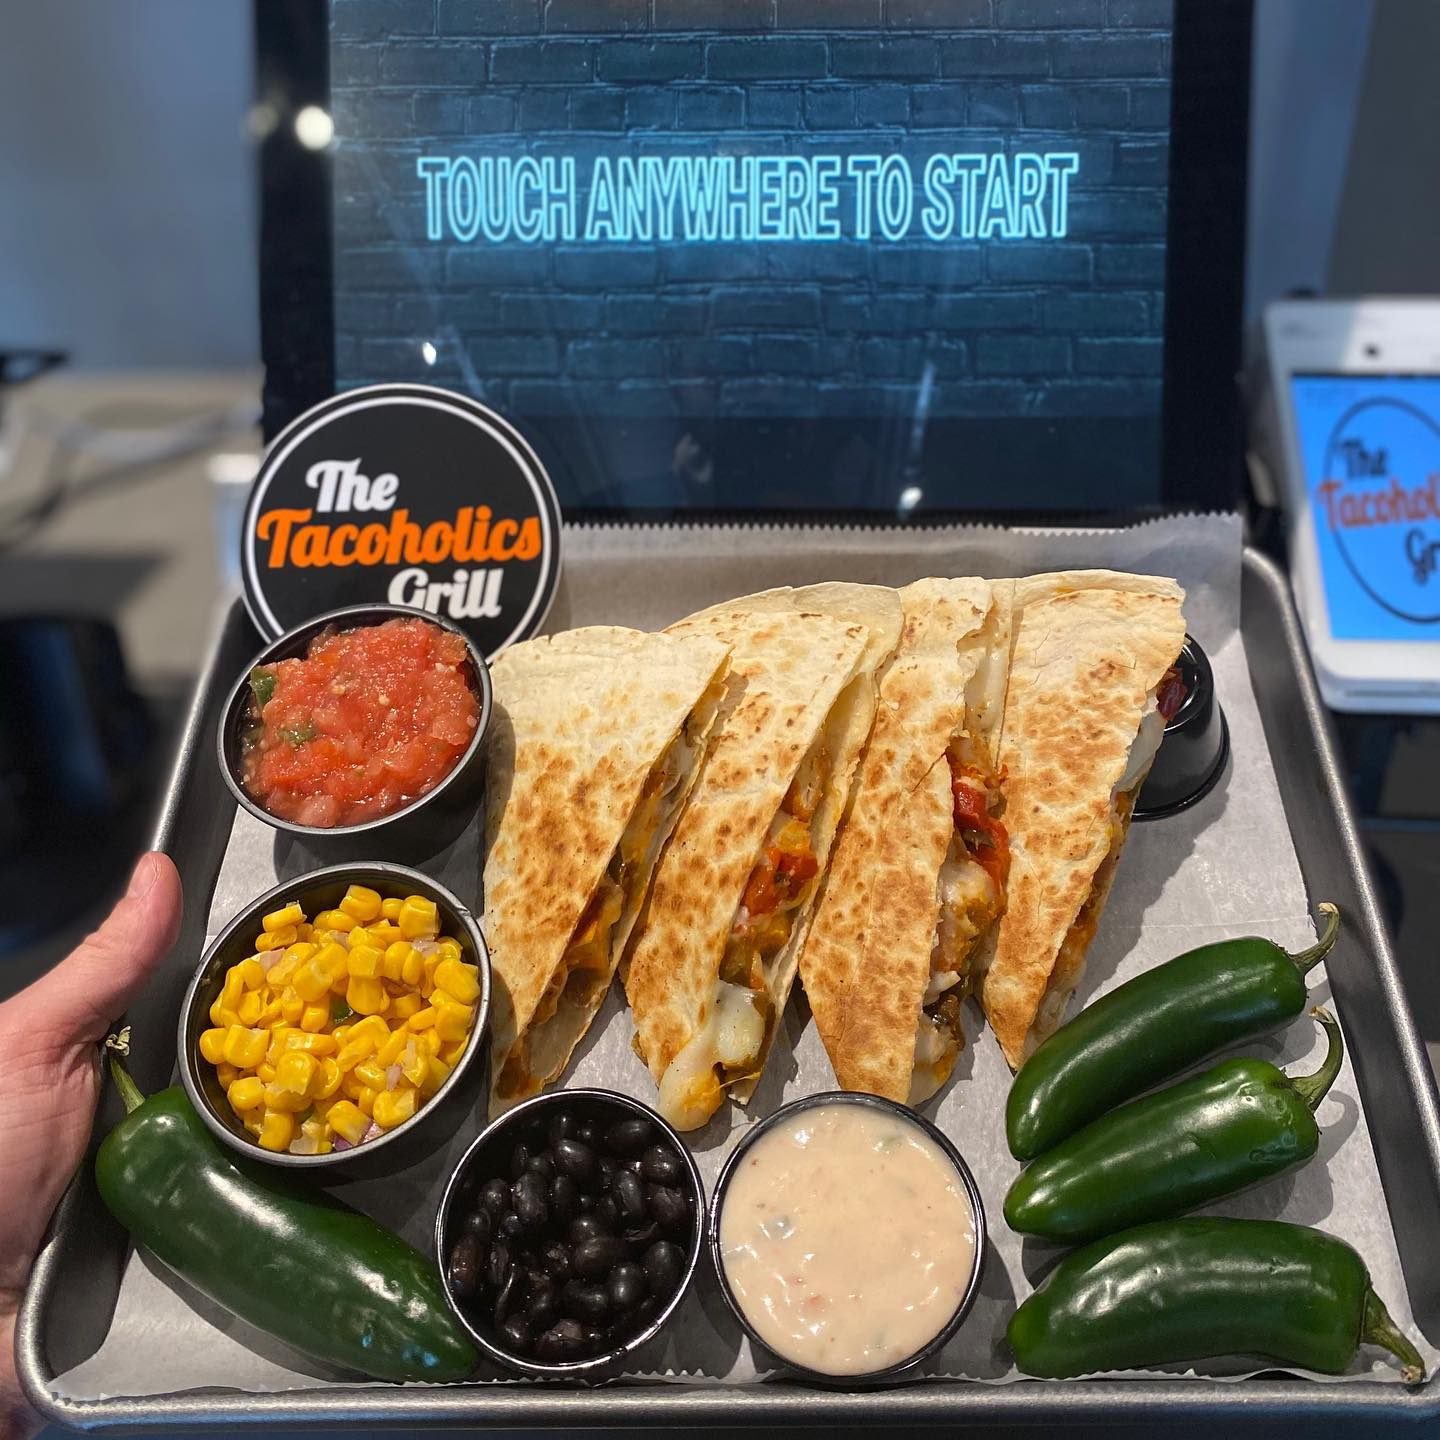 quesadillas with peppers and a variety of sides